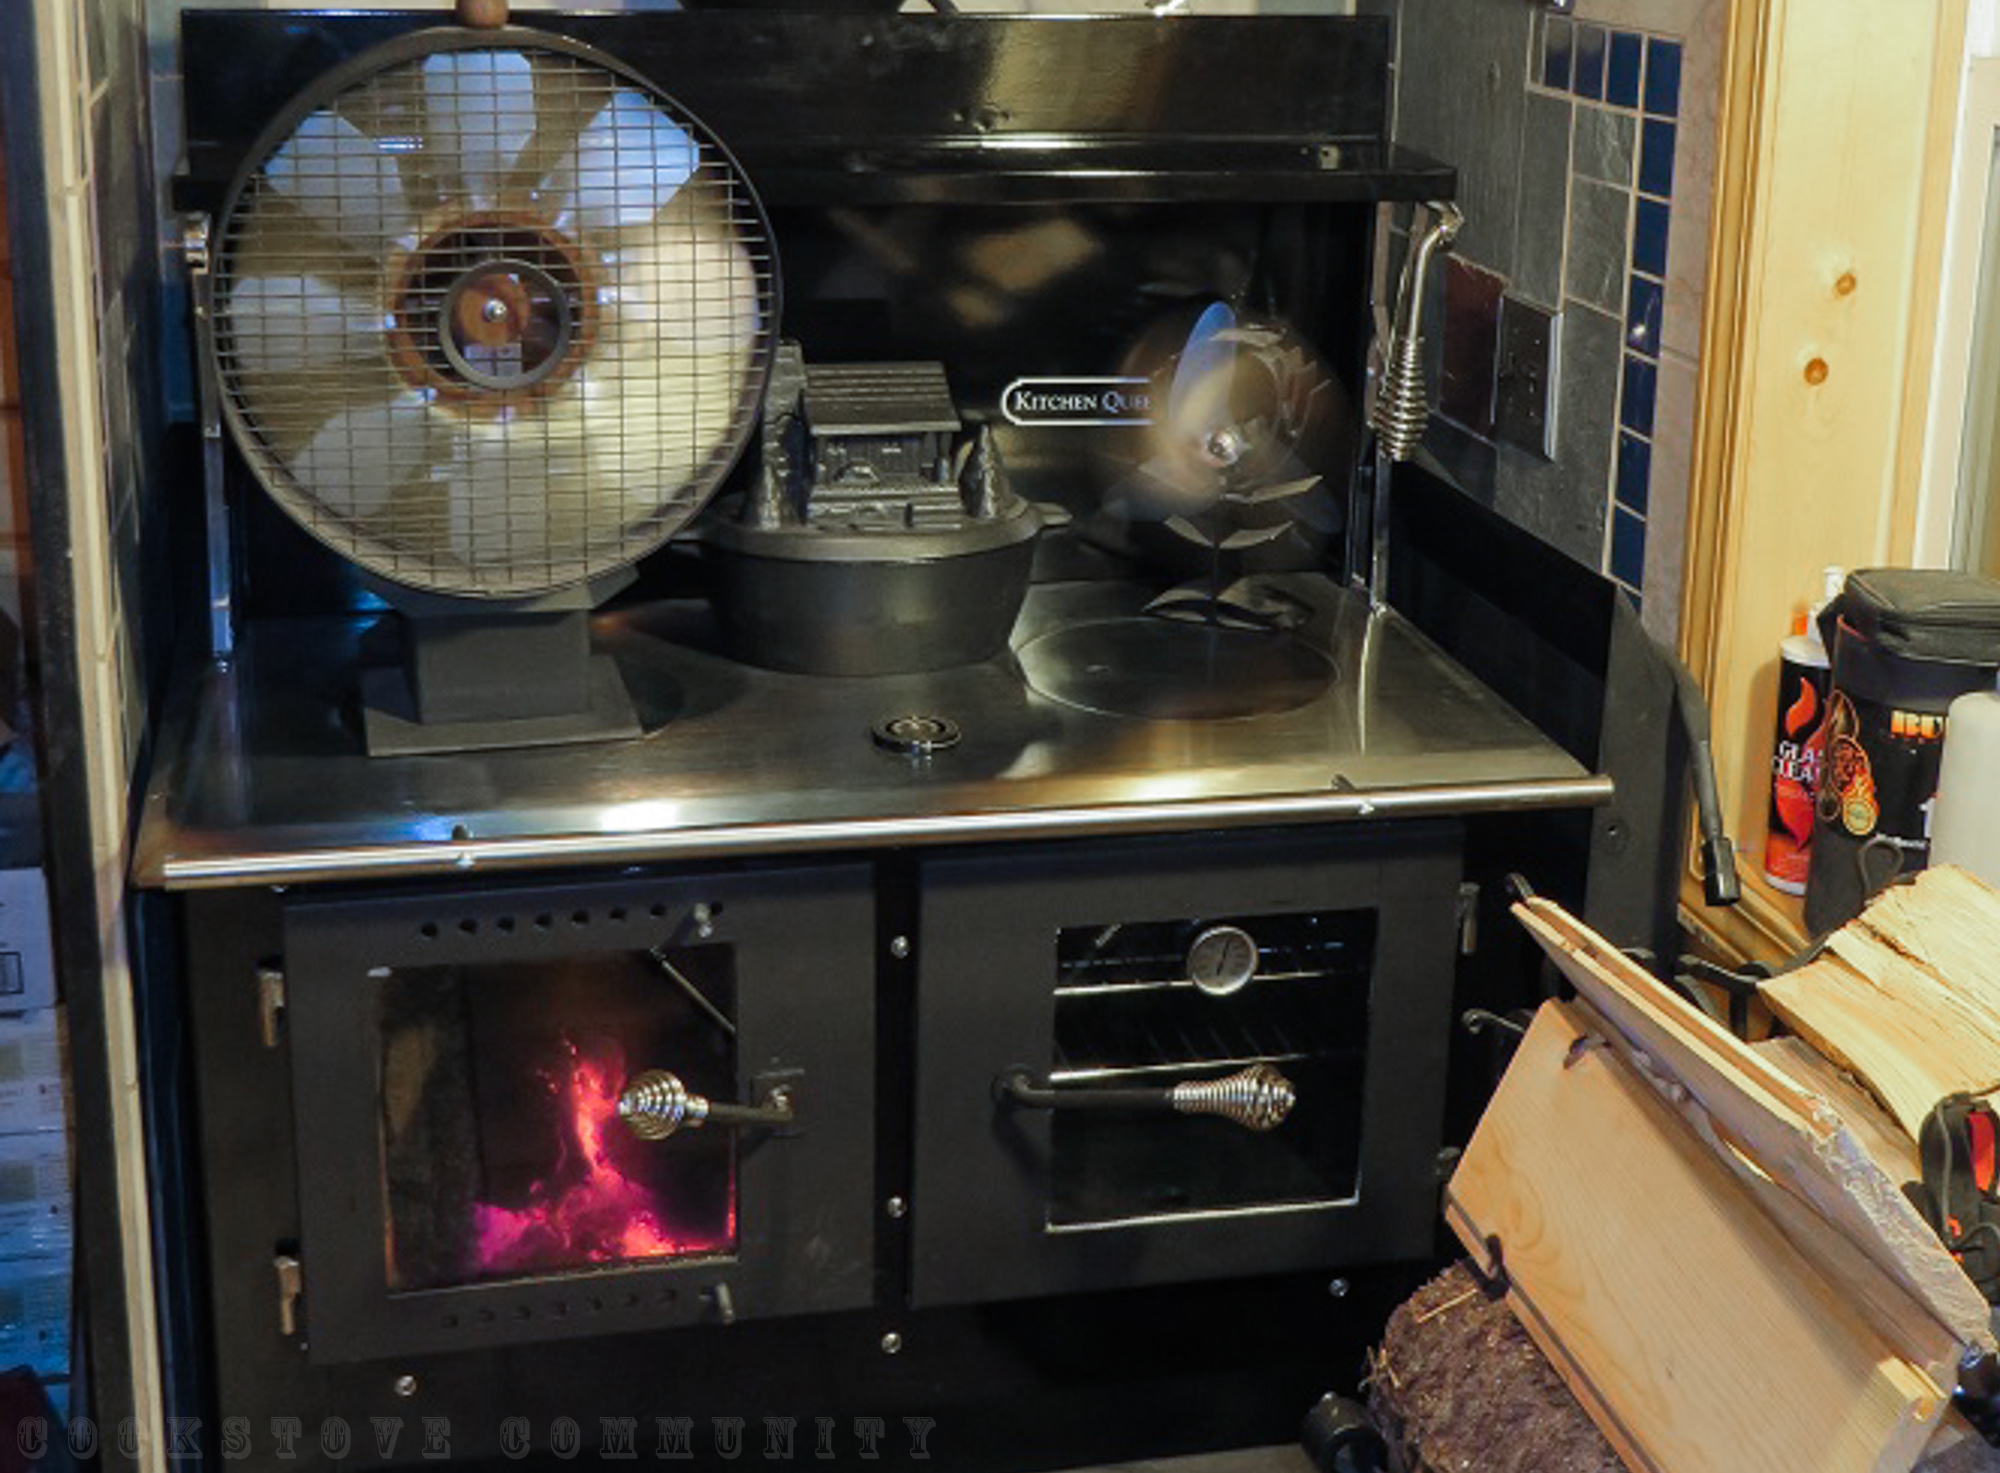 The Kitchen Queen Cookstove - Cookstove Community